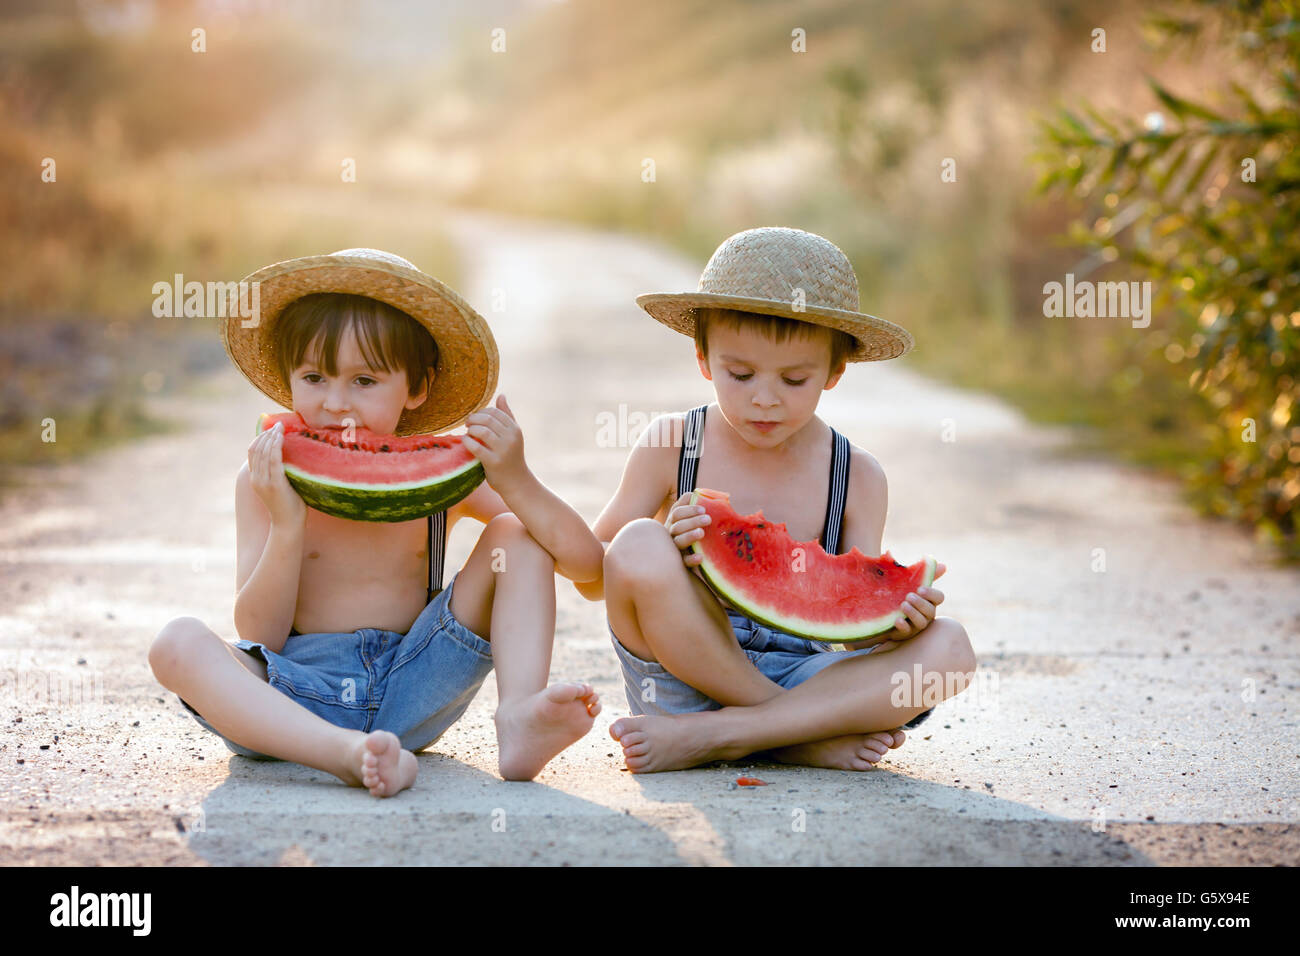 Two cute little boys, eating watermelon on a rural village path, summertime - Stock Image